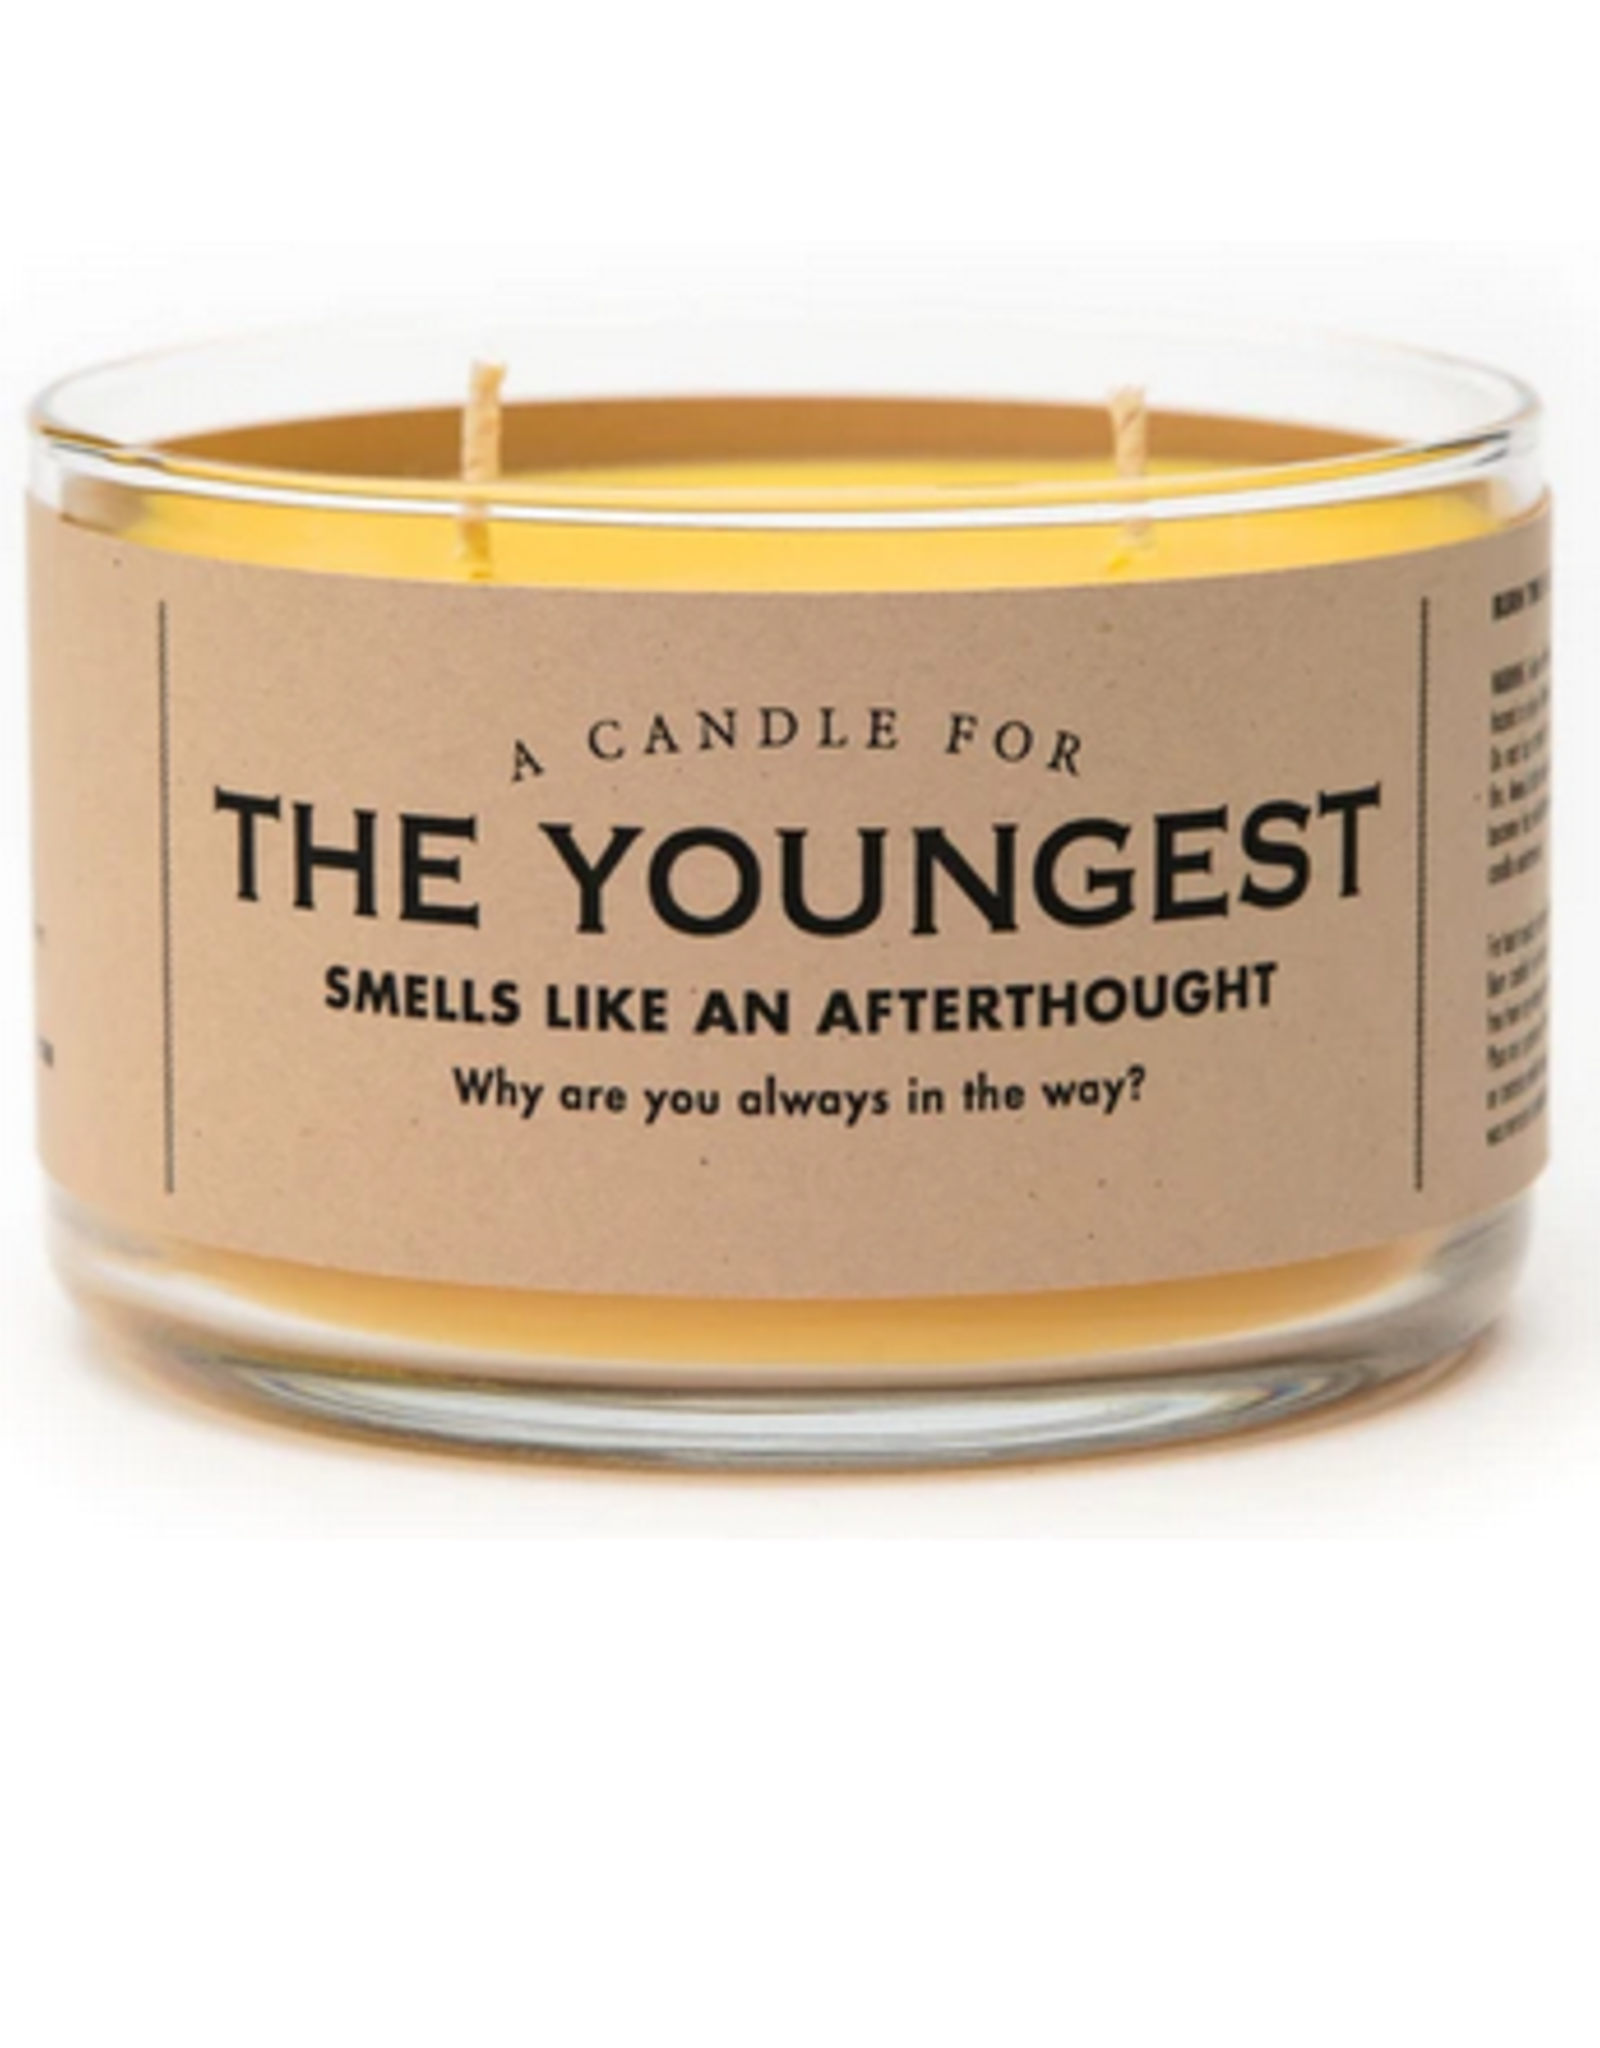 A Candle for The Youngest (Baby Lotion Scented)